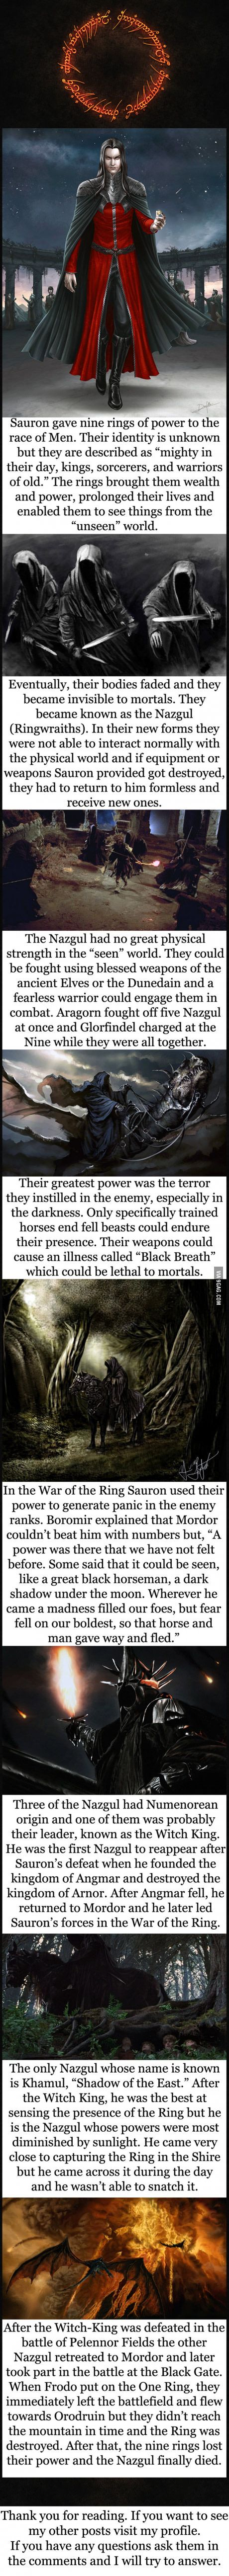 They are the Nazgul....and they are neither living nor dead.